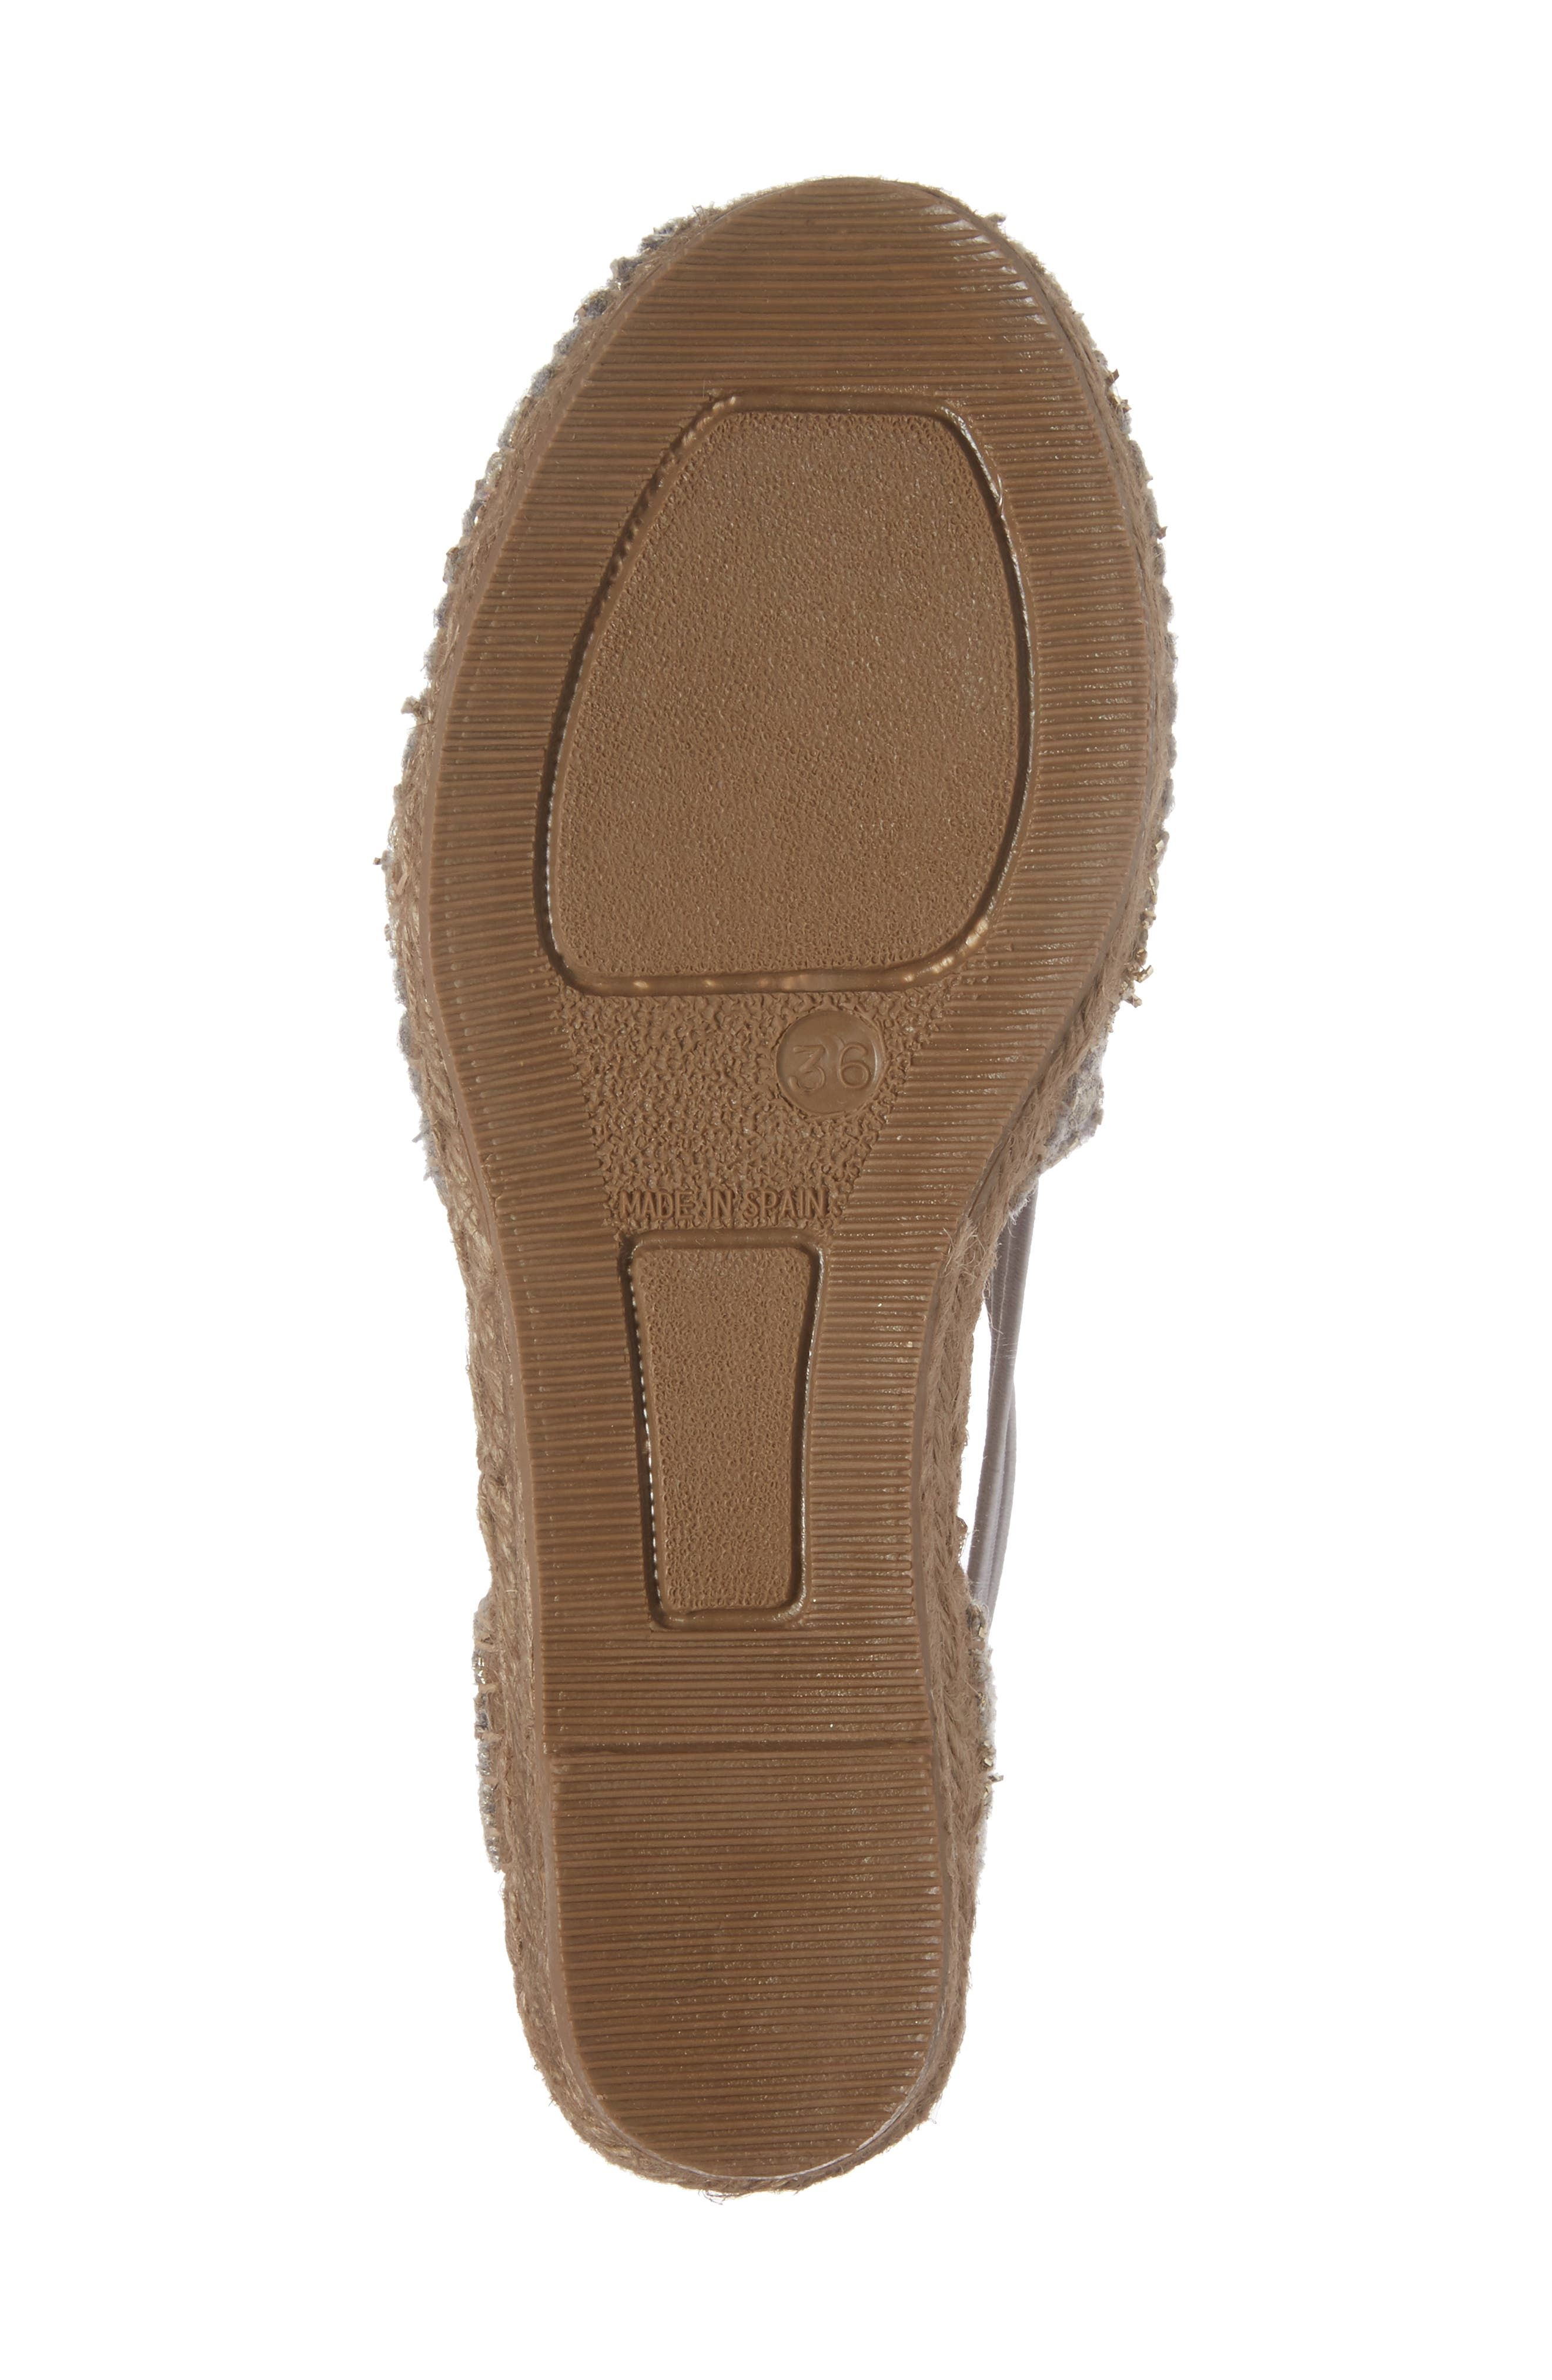 Metz Embroidered Espadrille Wedge,                             Alternate thumbnail 6, color,                             020